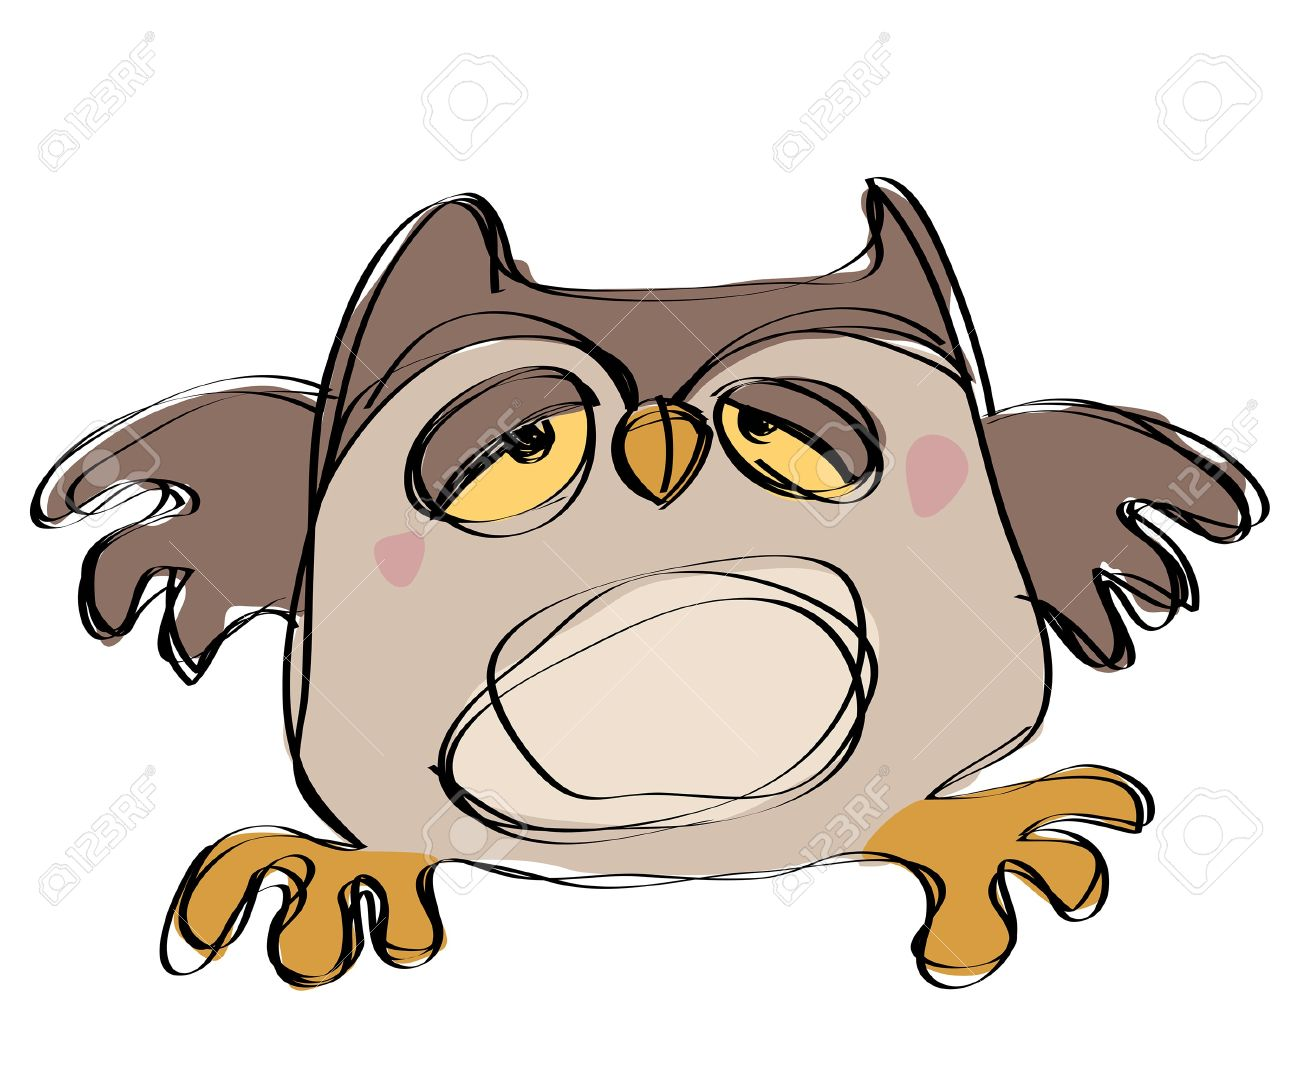 Uncategorized Baby Owl Drawing cartoon brown baby owl in a naif childish drawing style looking sleepy stock vector 20560971